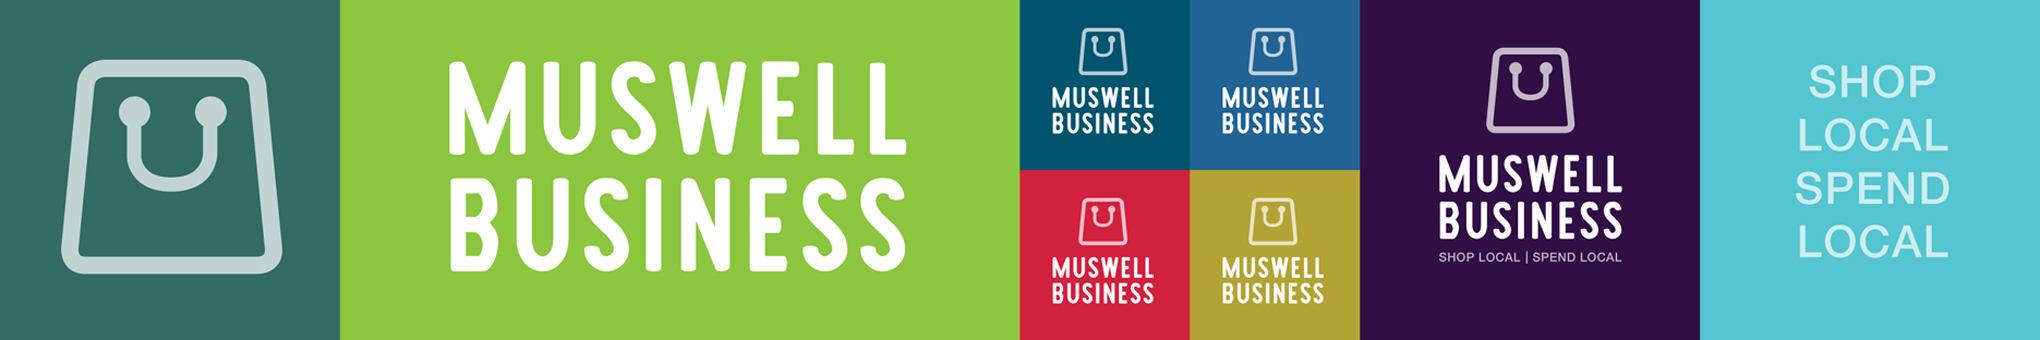 Muswell Business website header